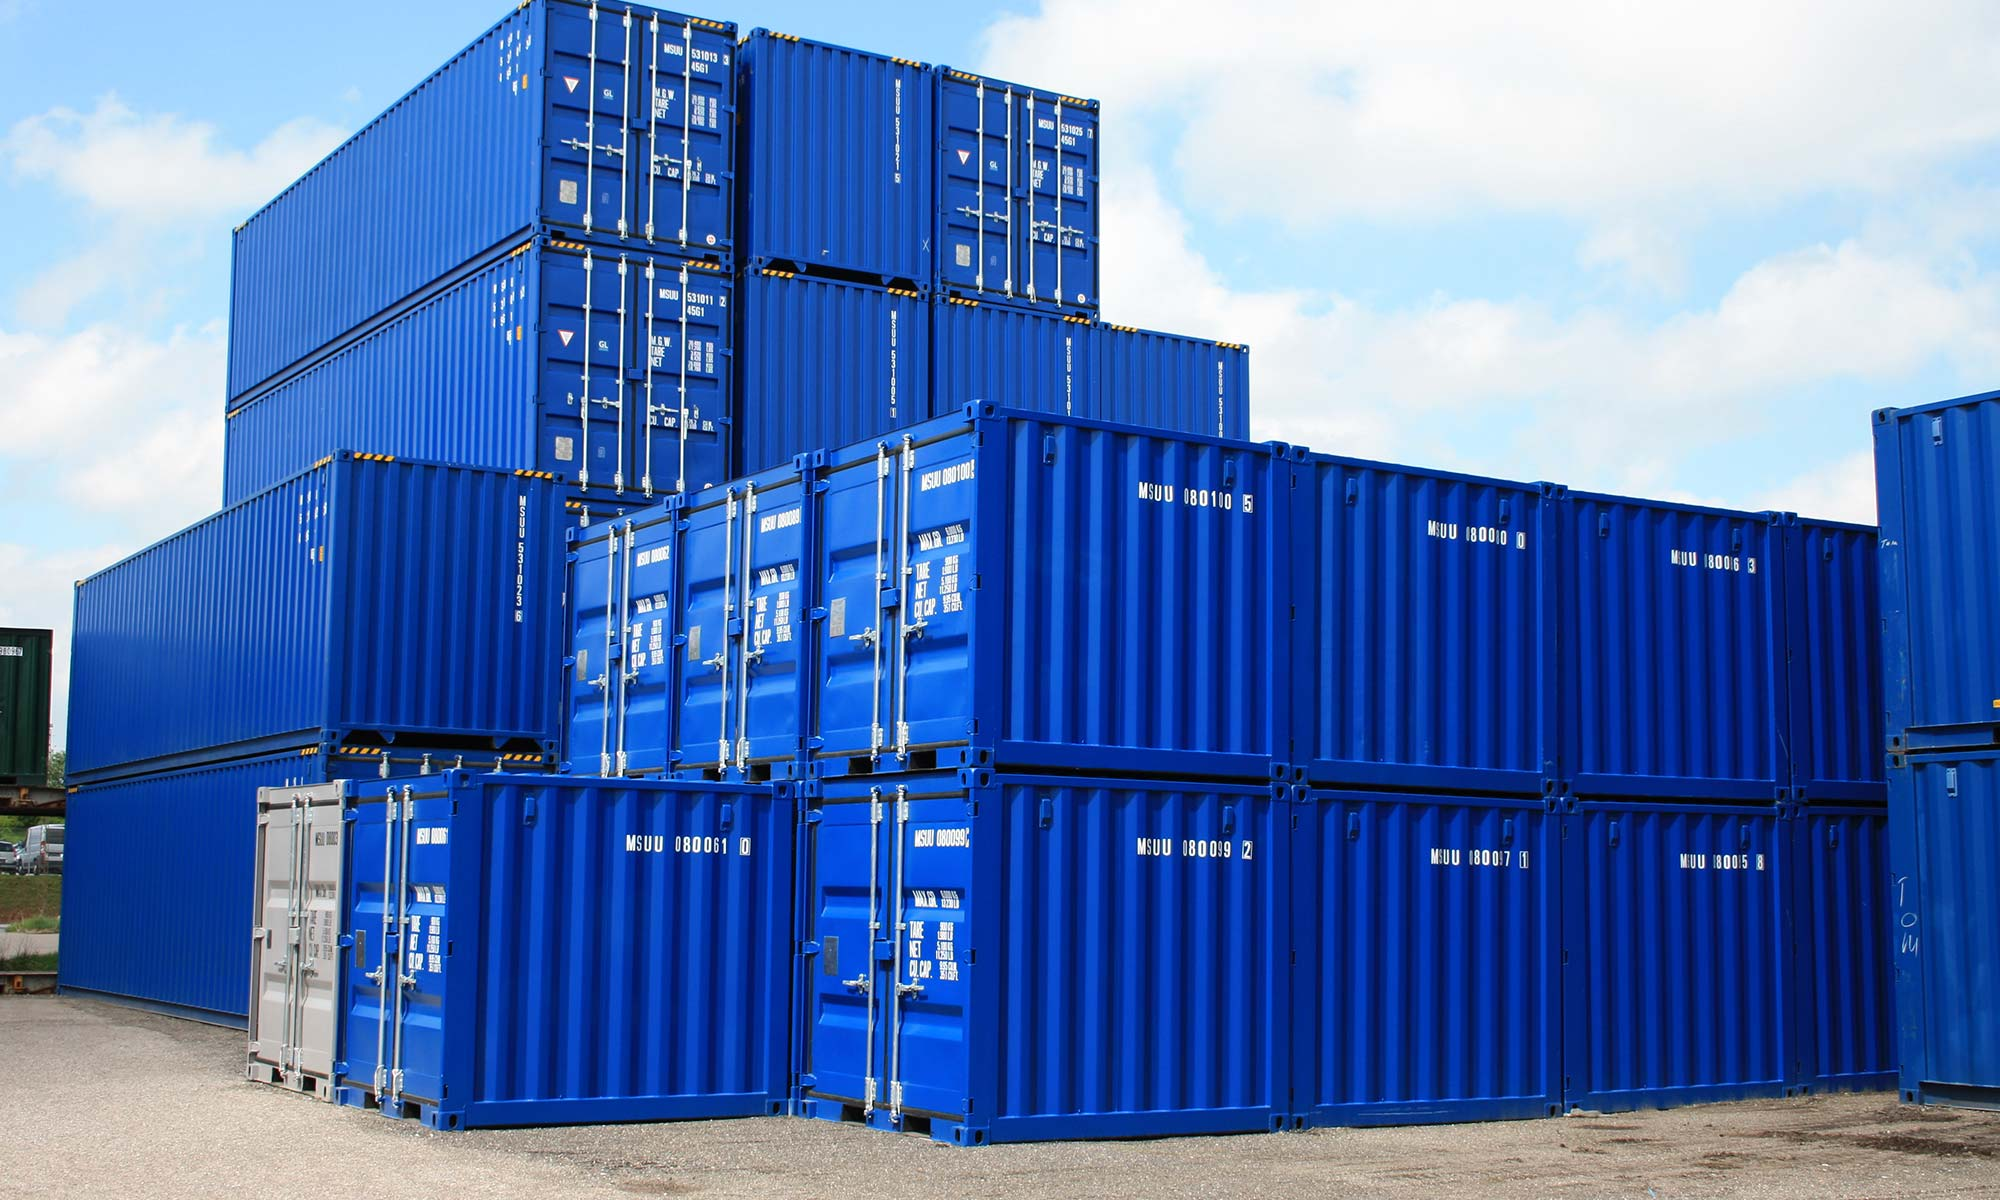 cho-thue-container-vietship